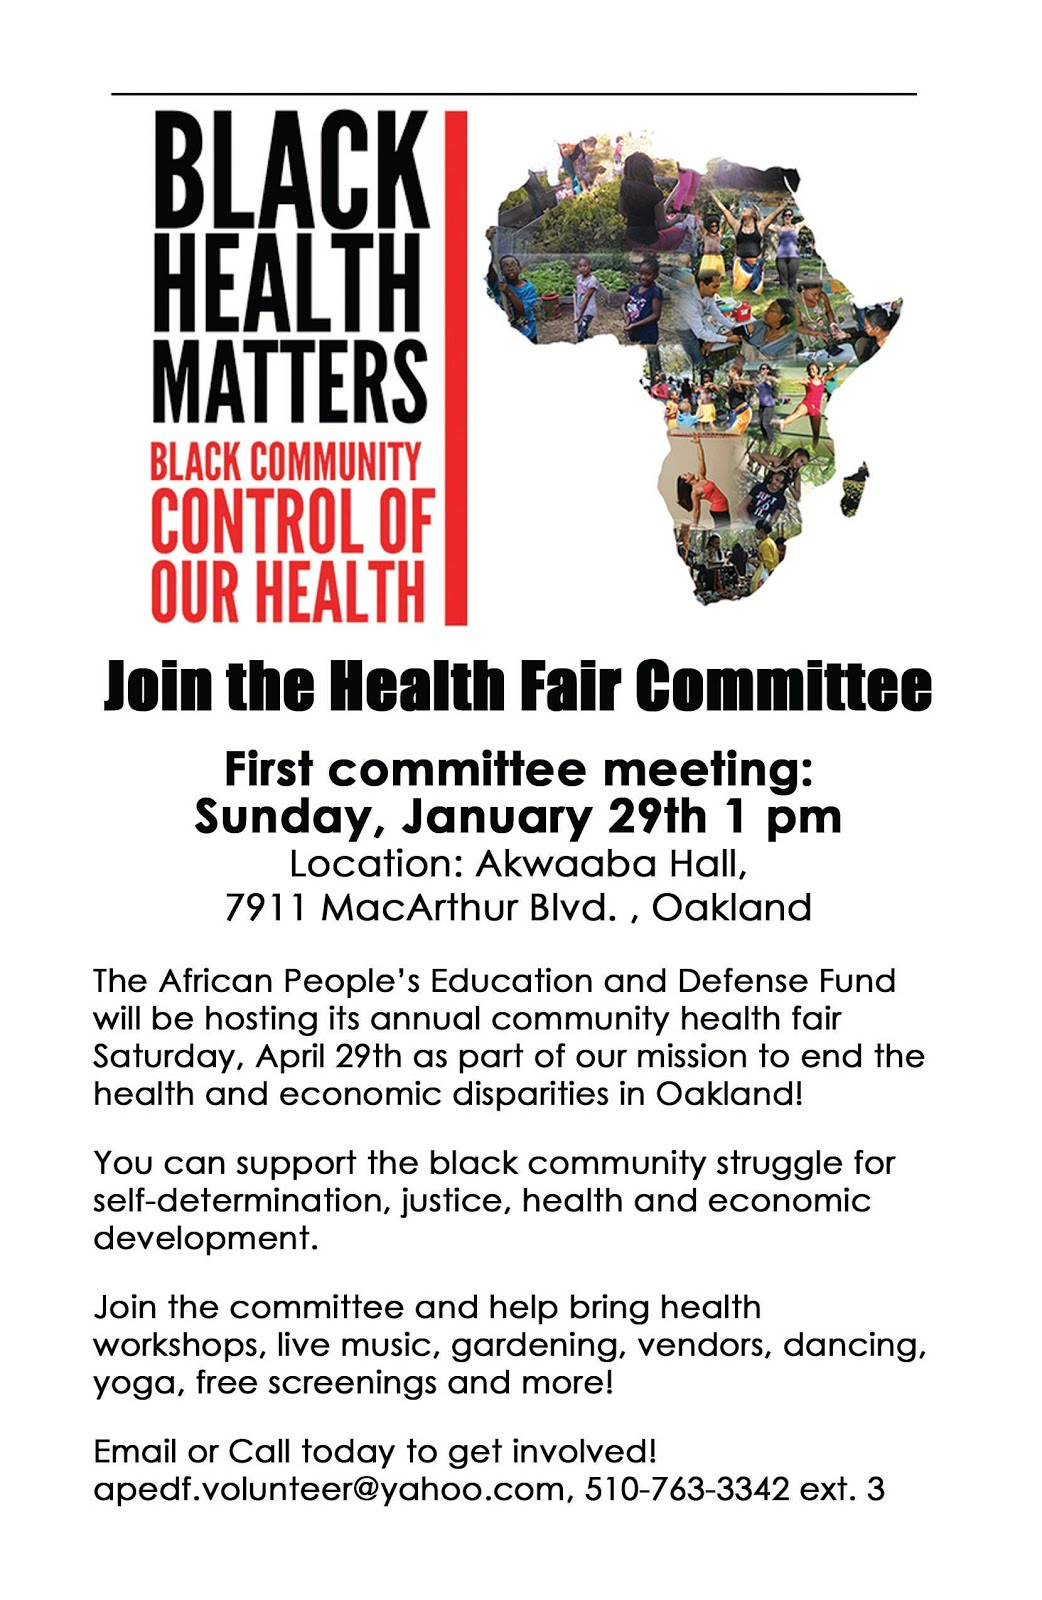 Attend the Health Fair Kick-Off Committee Meeting